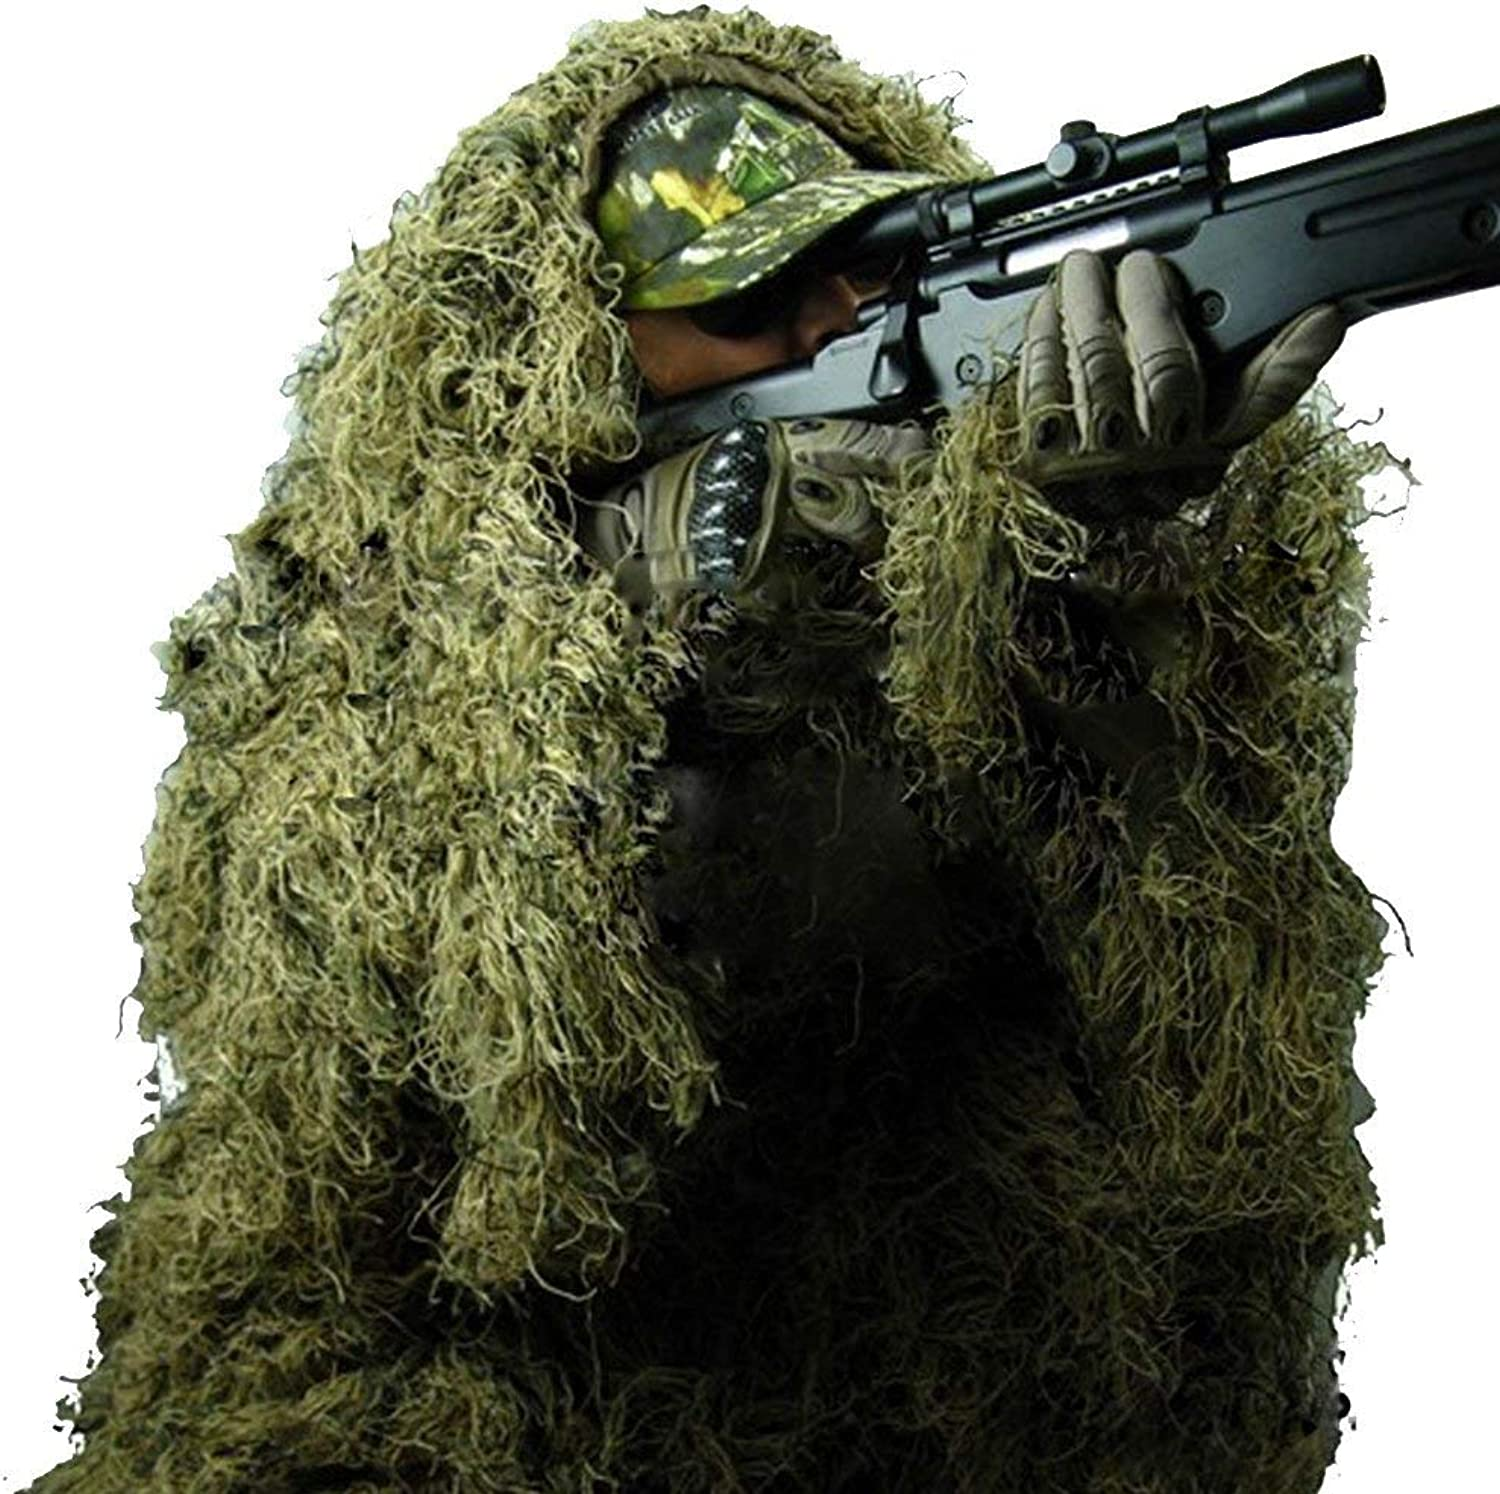 Camo Suits Ghillie Suits 3D Woodland Camouflage Clothing Army Sniper Military Clothes Pants Jungle Hunting,Shooting, Airsoft,Wildlife Photography,Halloween